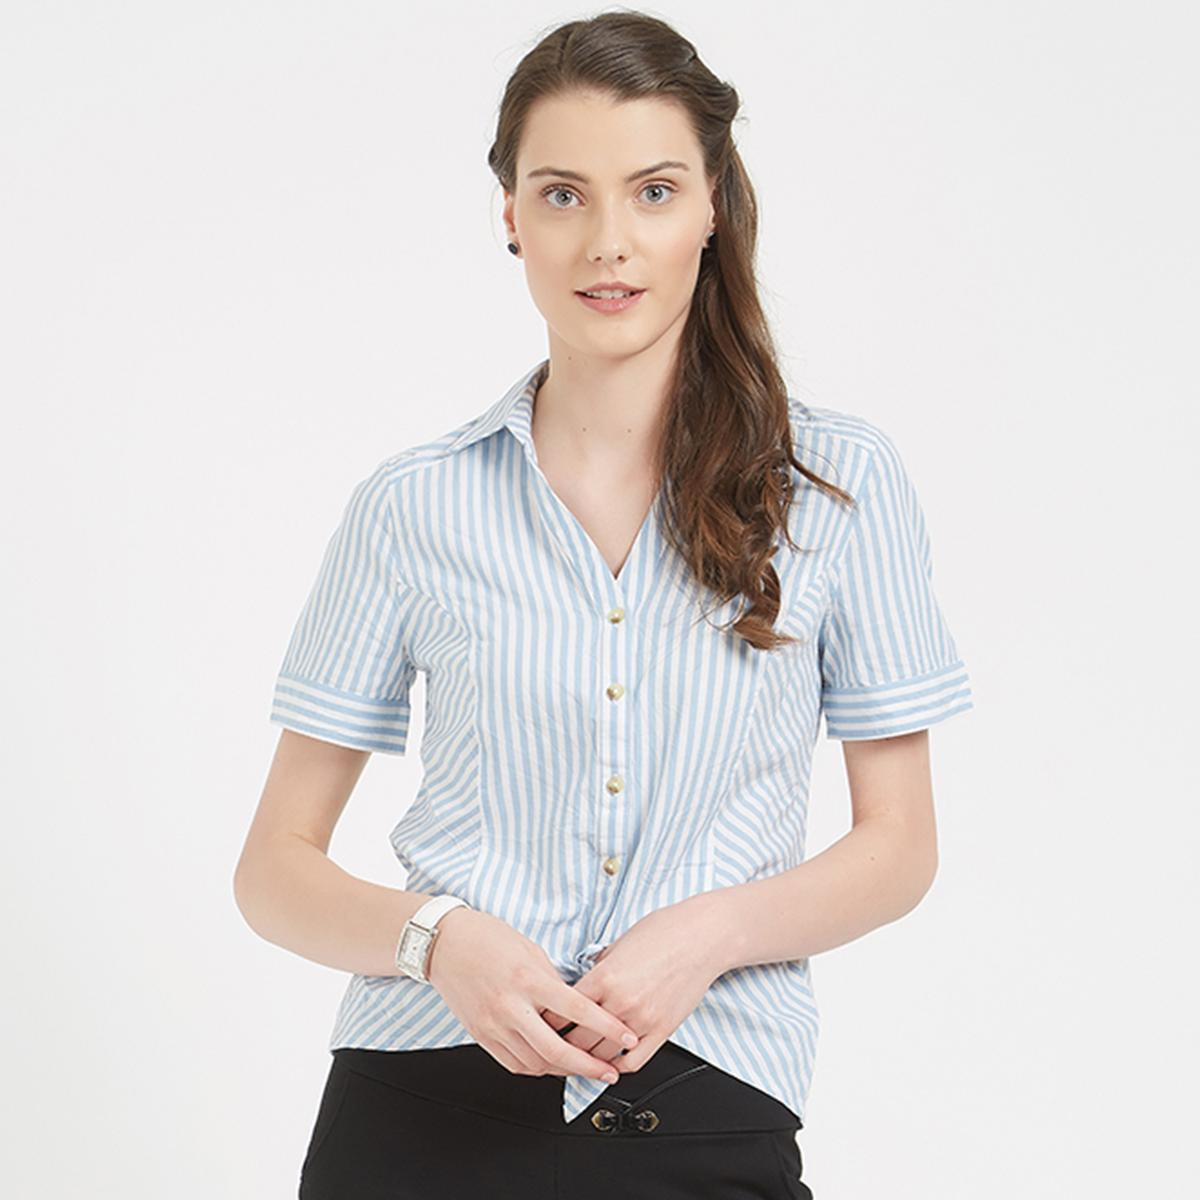 Classy White Colored Formal Wear Western Cotton Shirt